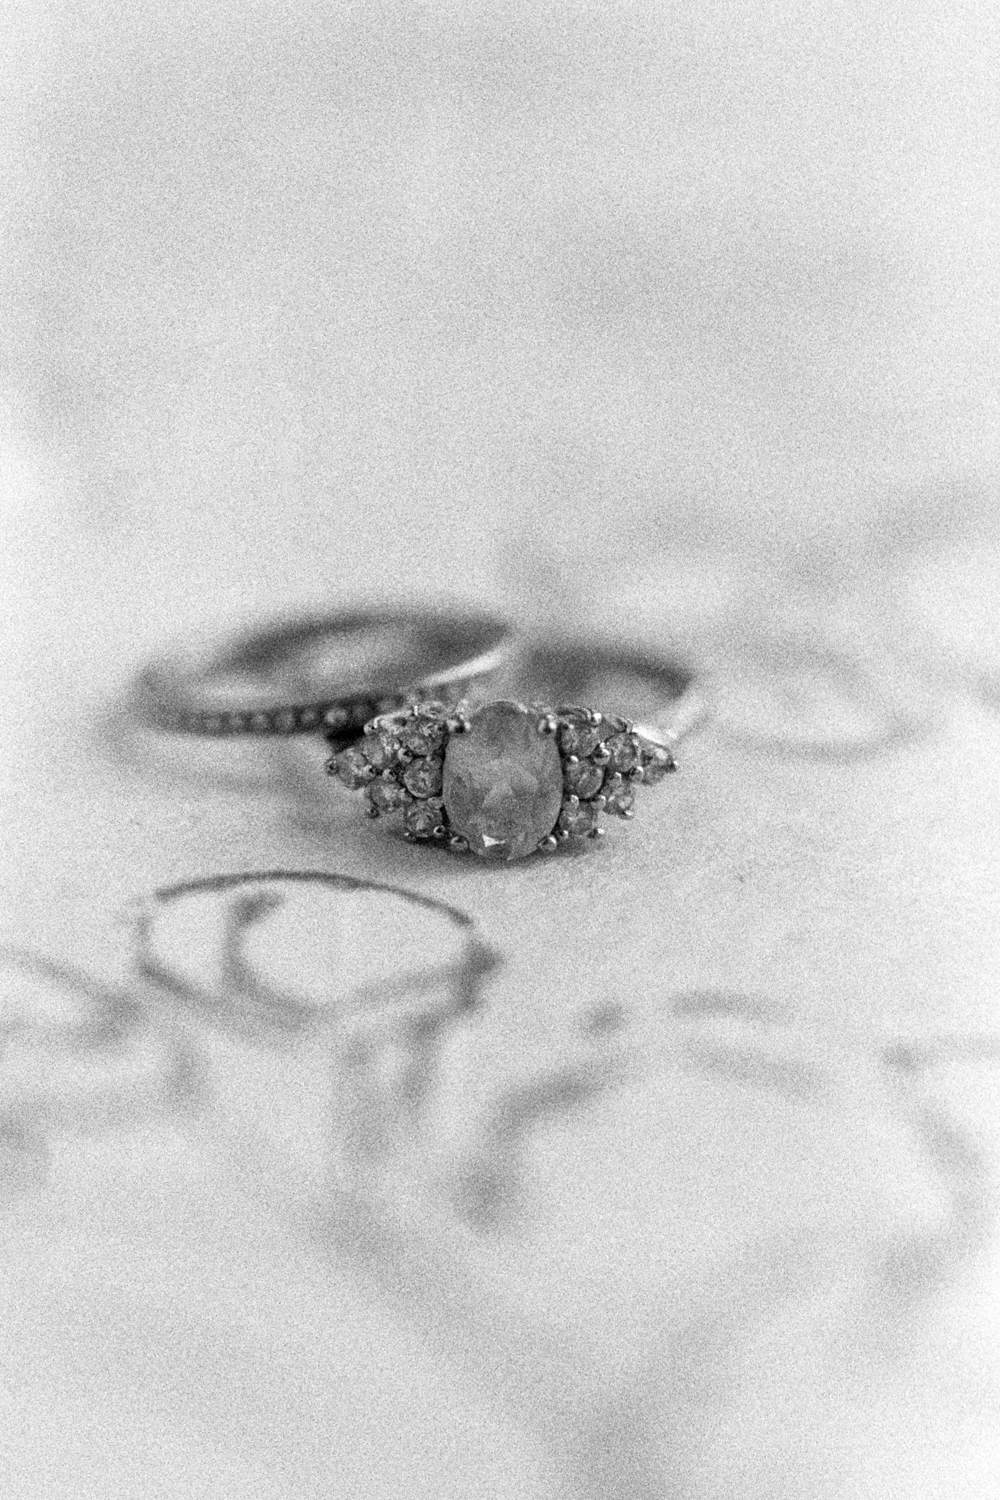 wedding-details-rings-bands-christine-gosch-film-photographer-black-and-white-houston-texas-wedding-venue-35mm-photography-fine-art-1.jpg